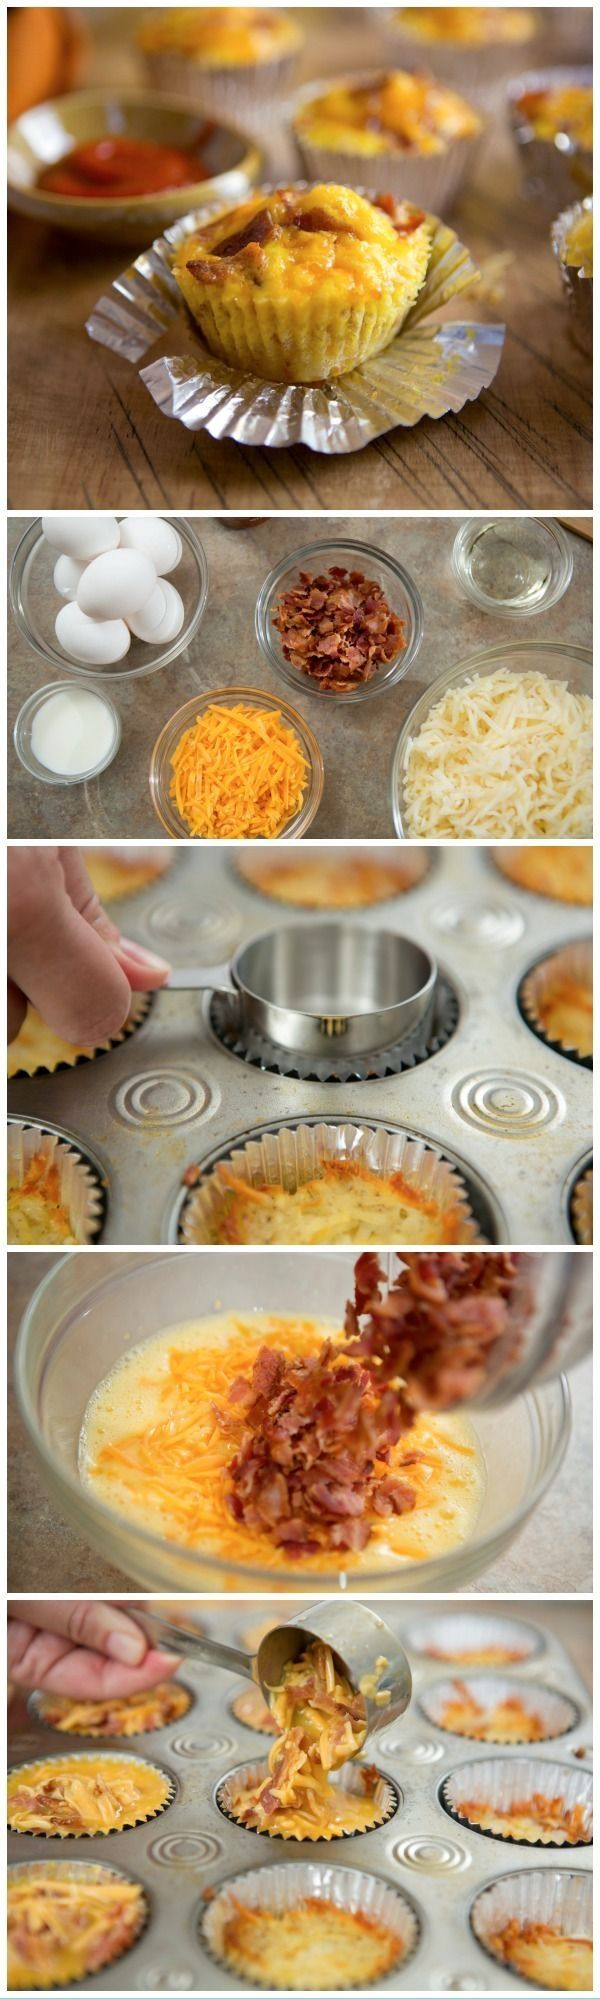 Bacon Breakfast Cupcakes we can add green peppers and onions too